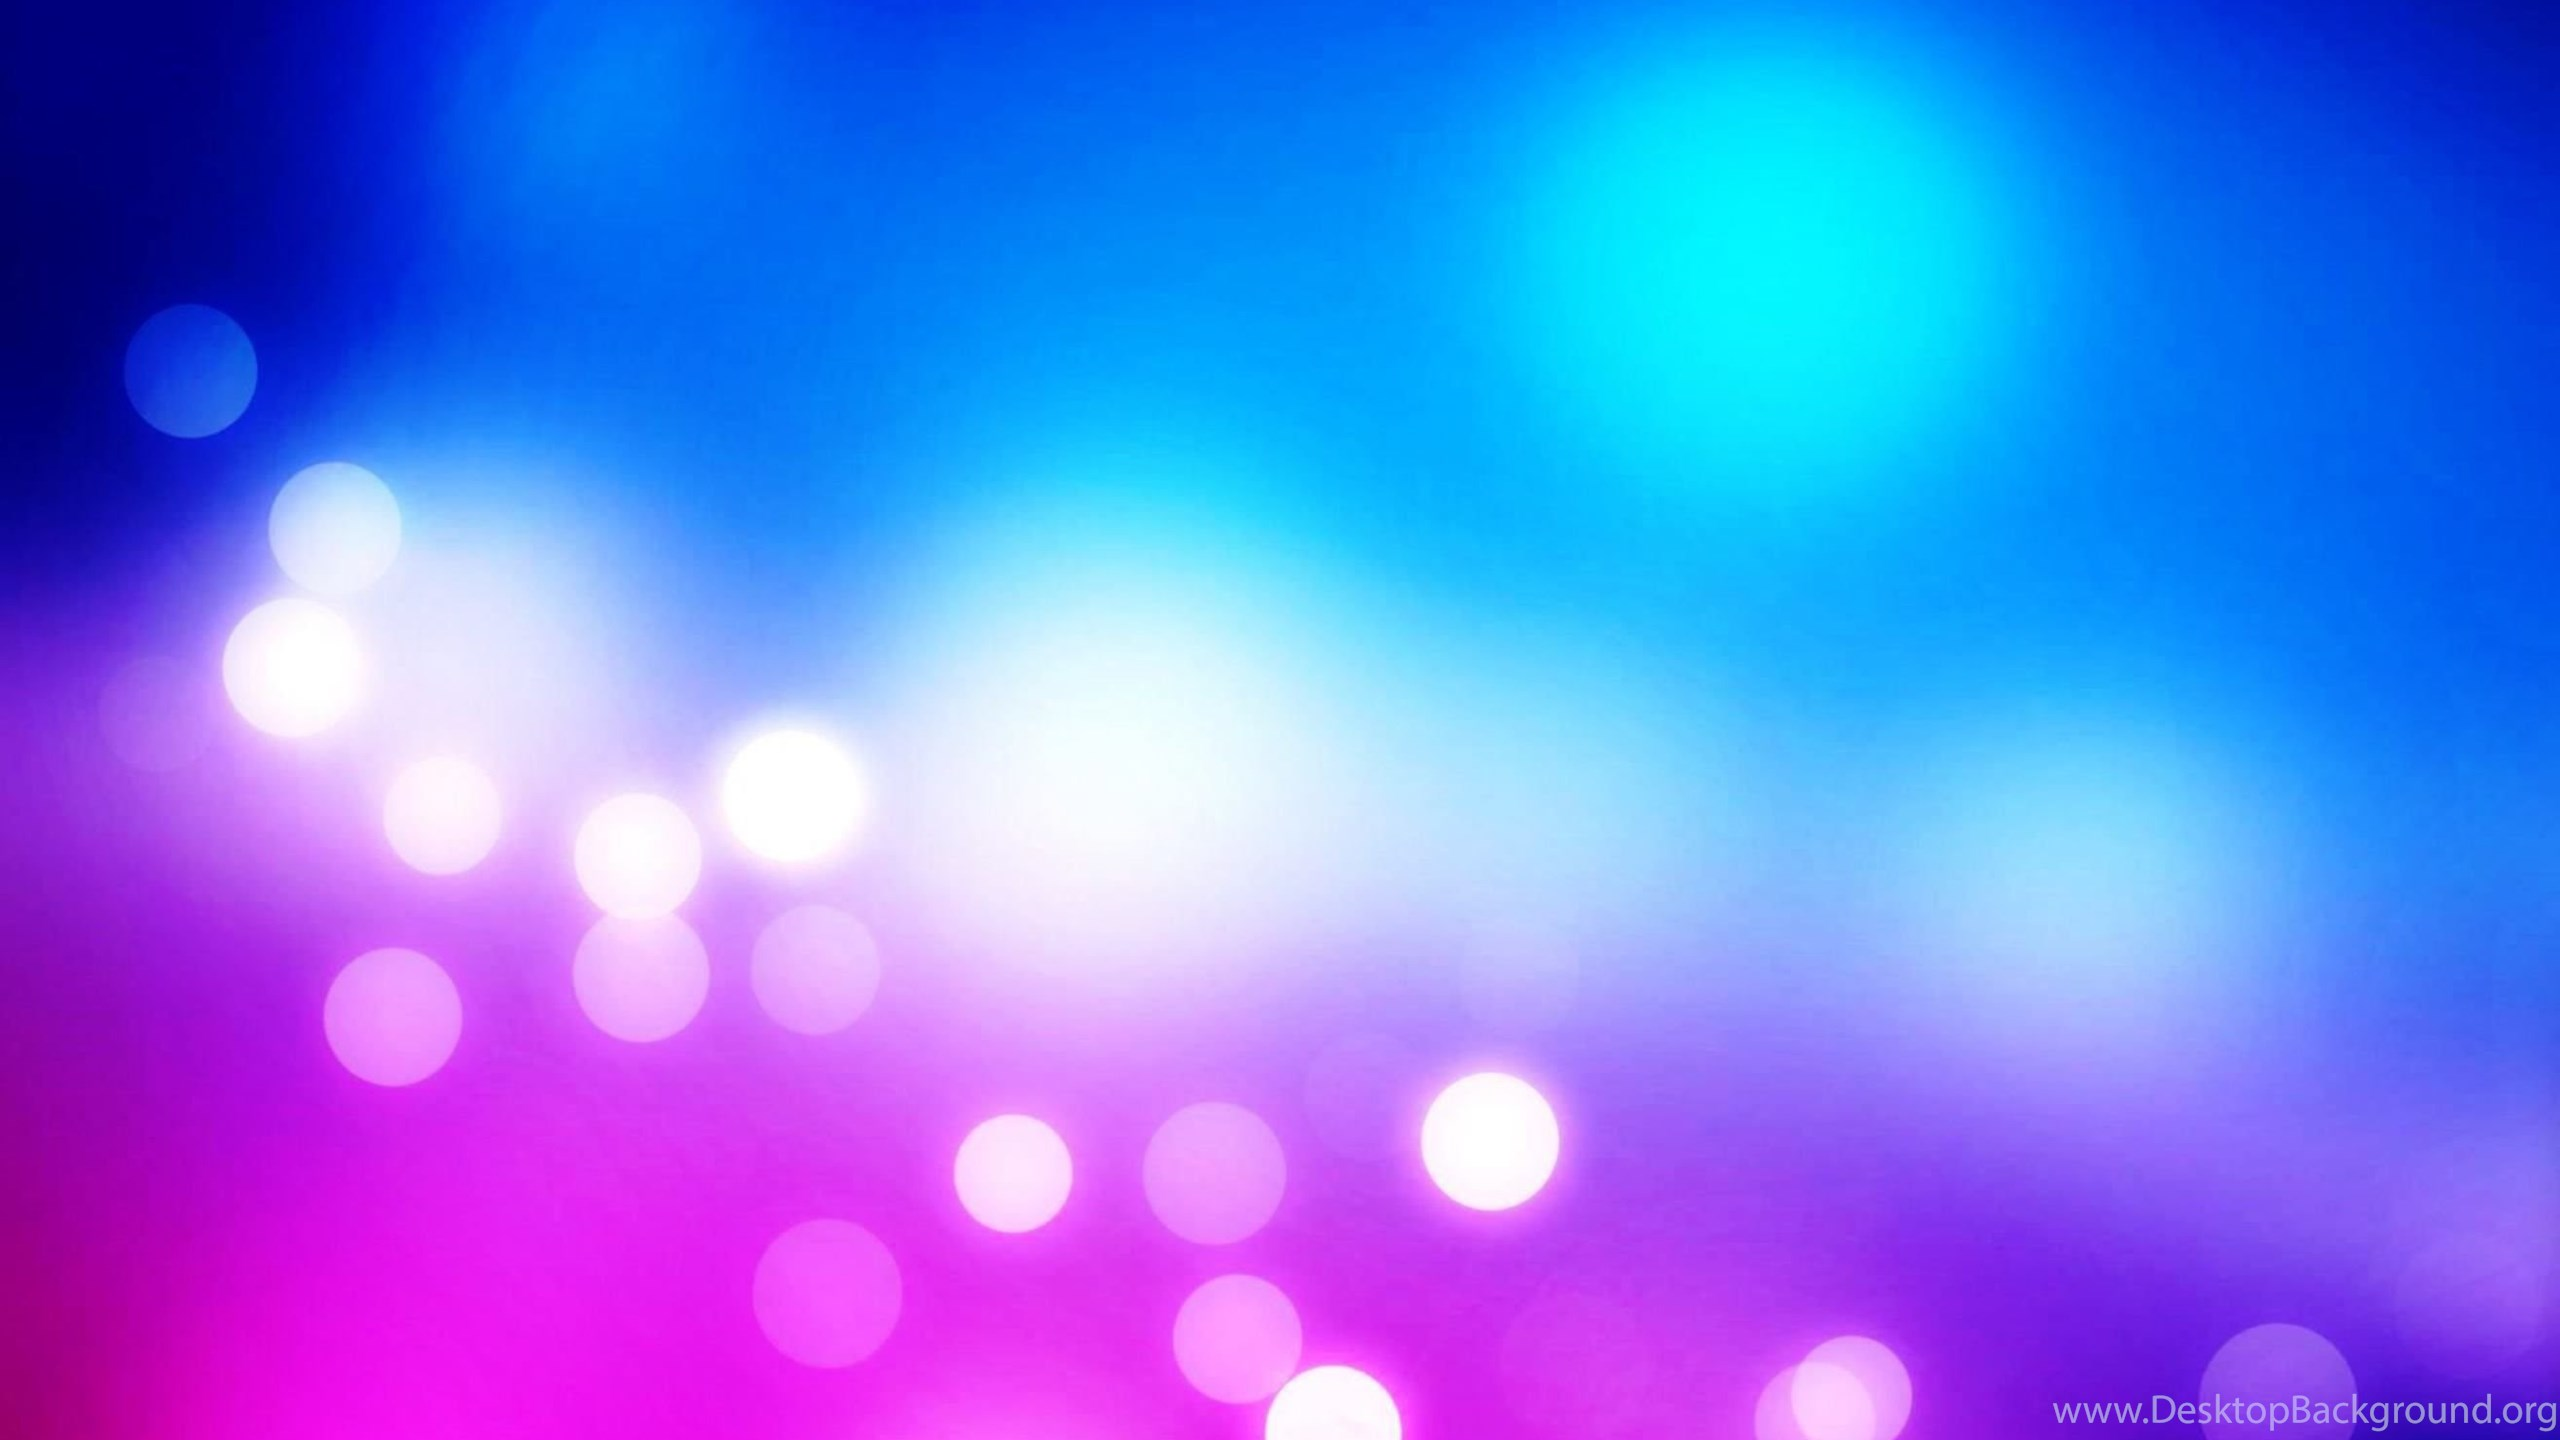 Cool Light Blue And Purple Backgrounds Desktop Background for Cool Light Blue And Purple Backgrounds  76uhy